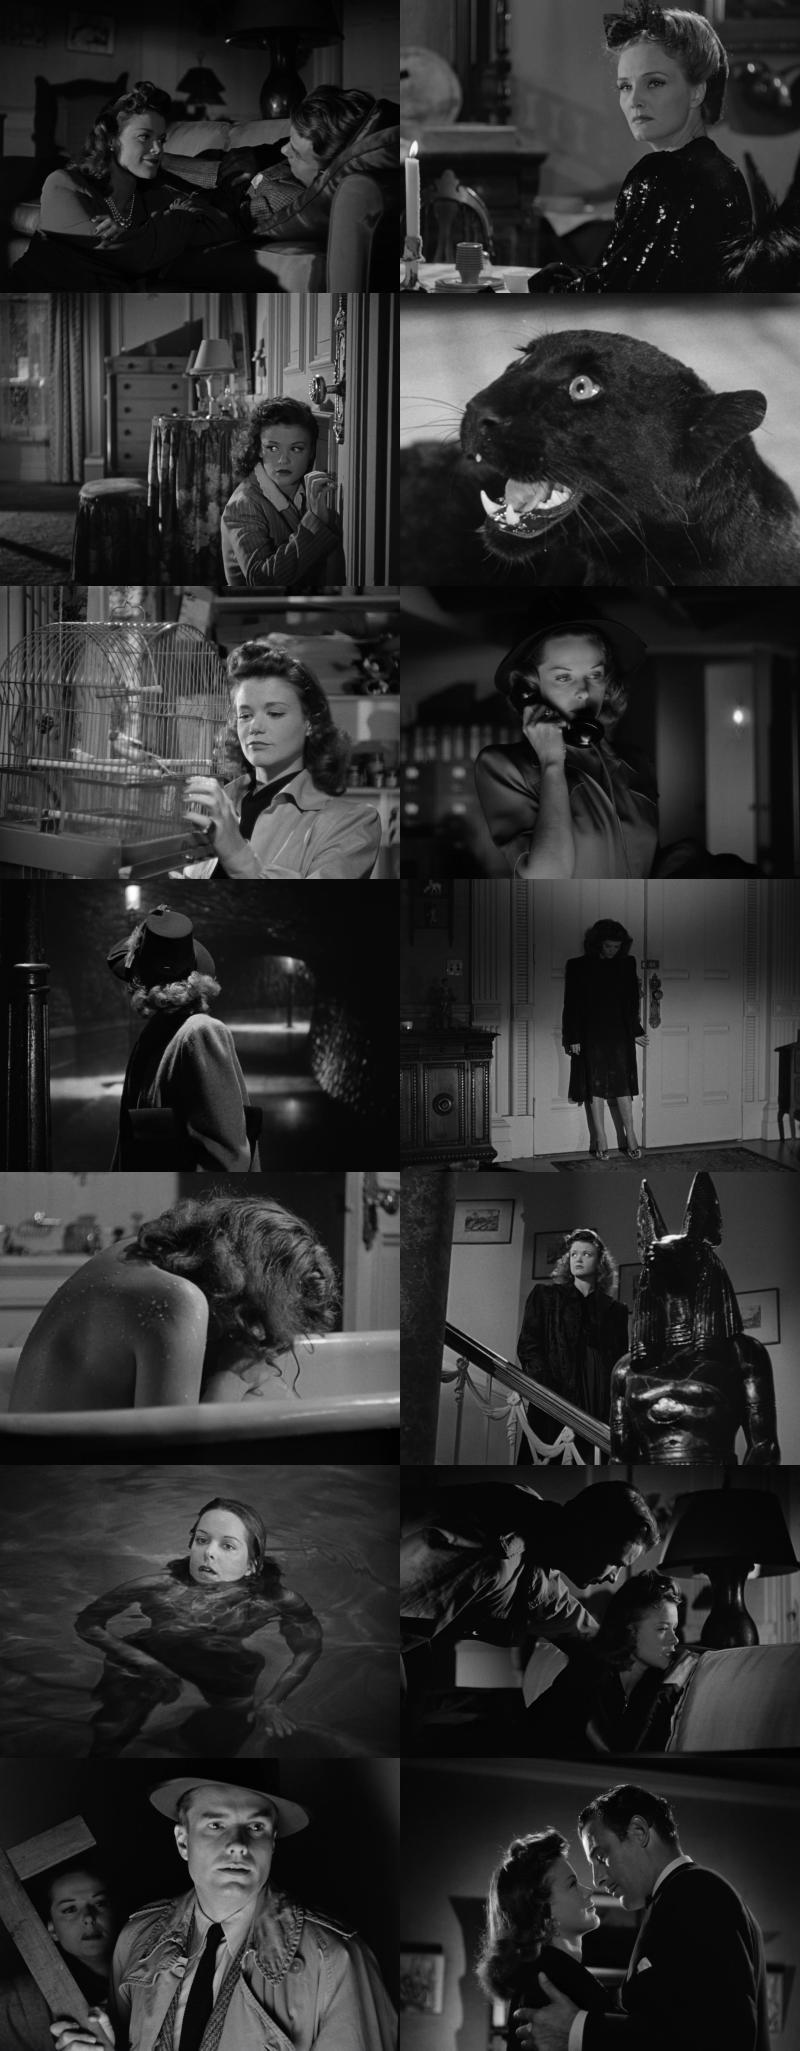 http://watershade.net/public/cat-people-1942.jpg